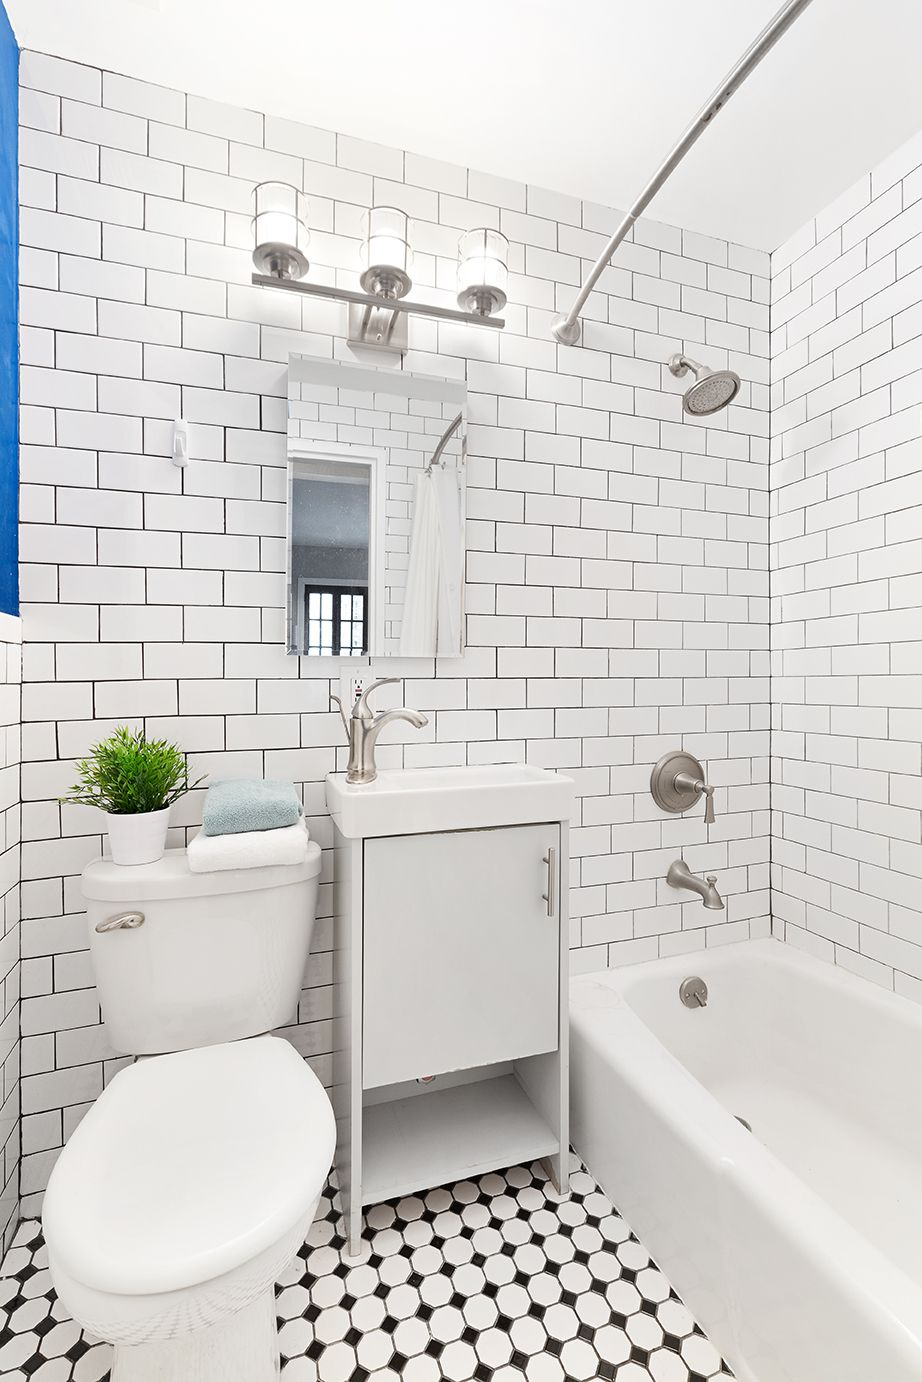 A bathroom with black and white tile floors and white walls.